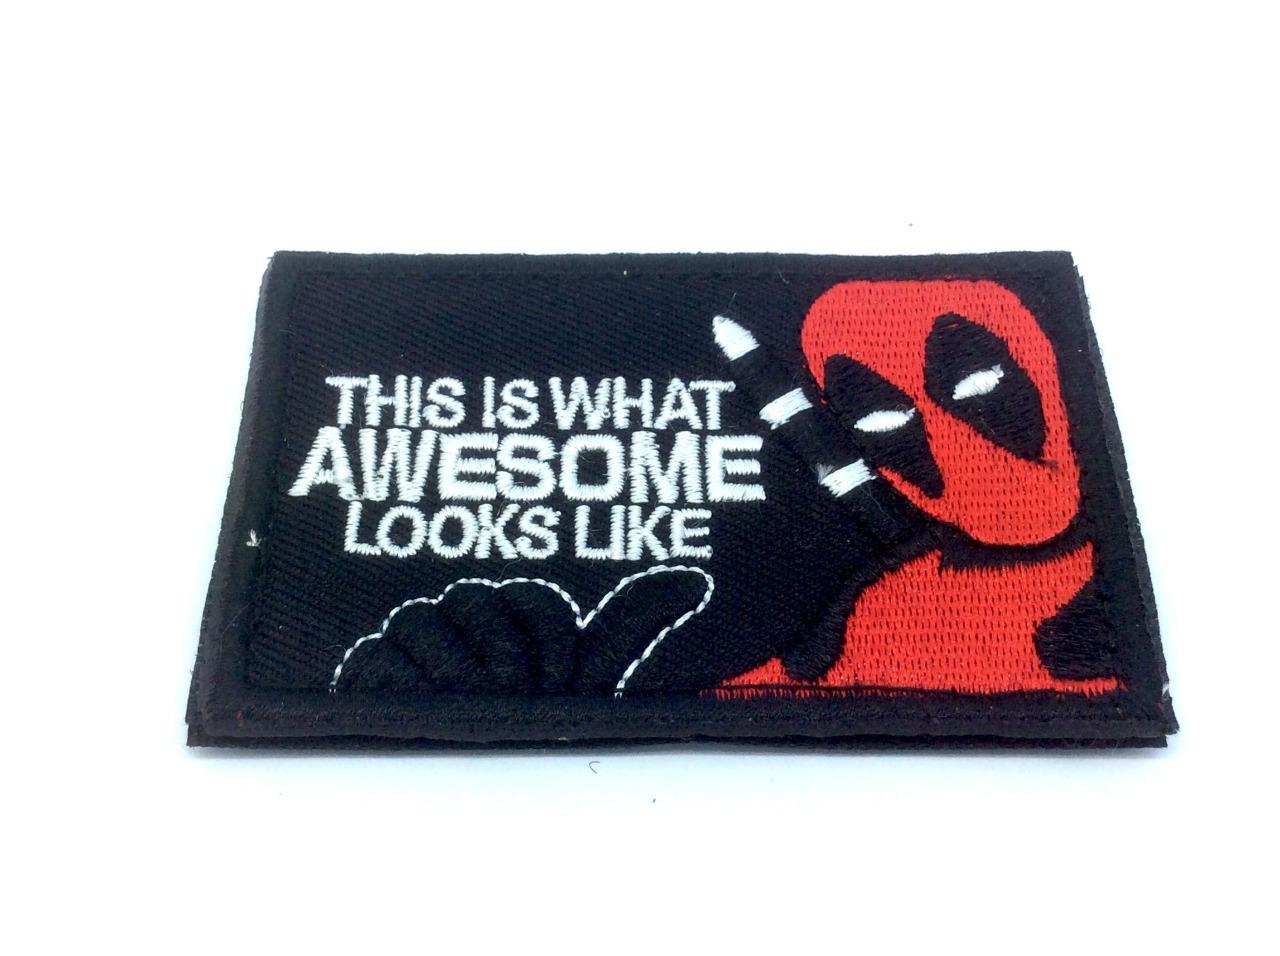 This Is What Awesome Looks Like Deadpool Embroidered Cosplay Paintball Patch by Ebay Seller